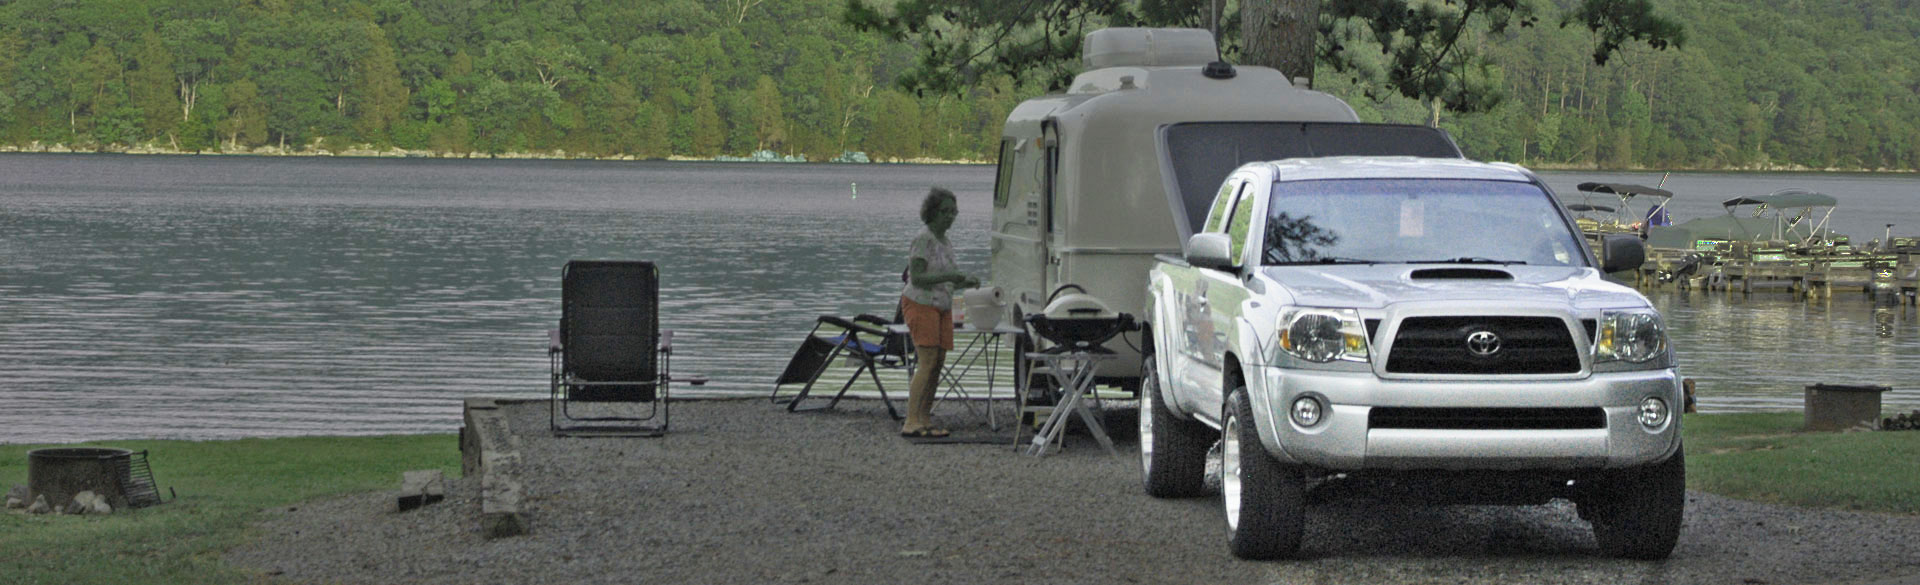 Campgrounds, Trailers and RVs